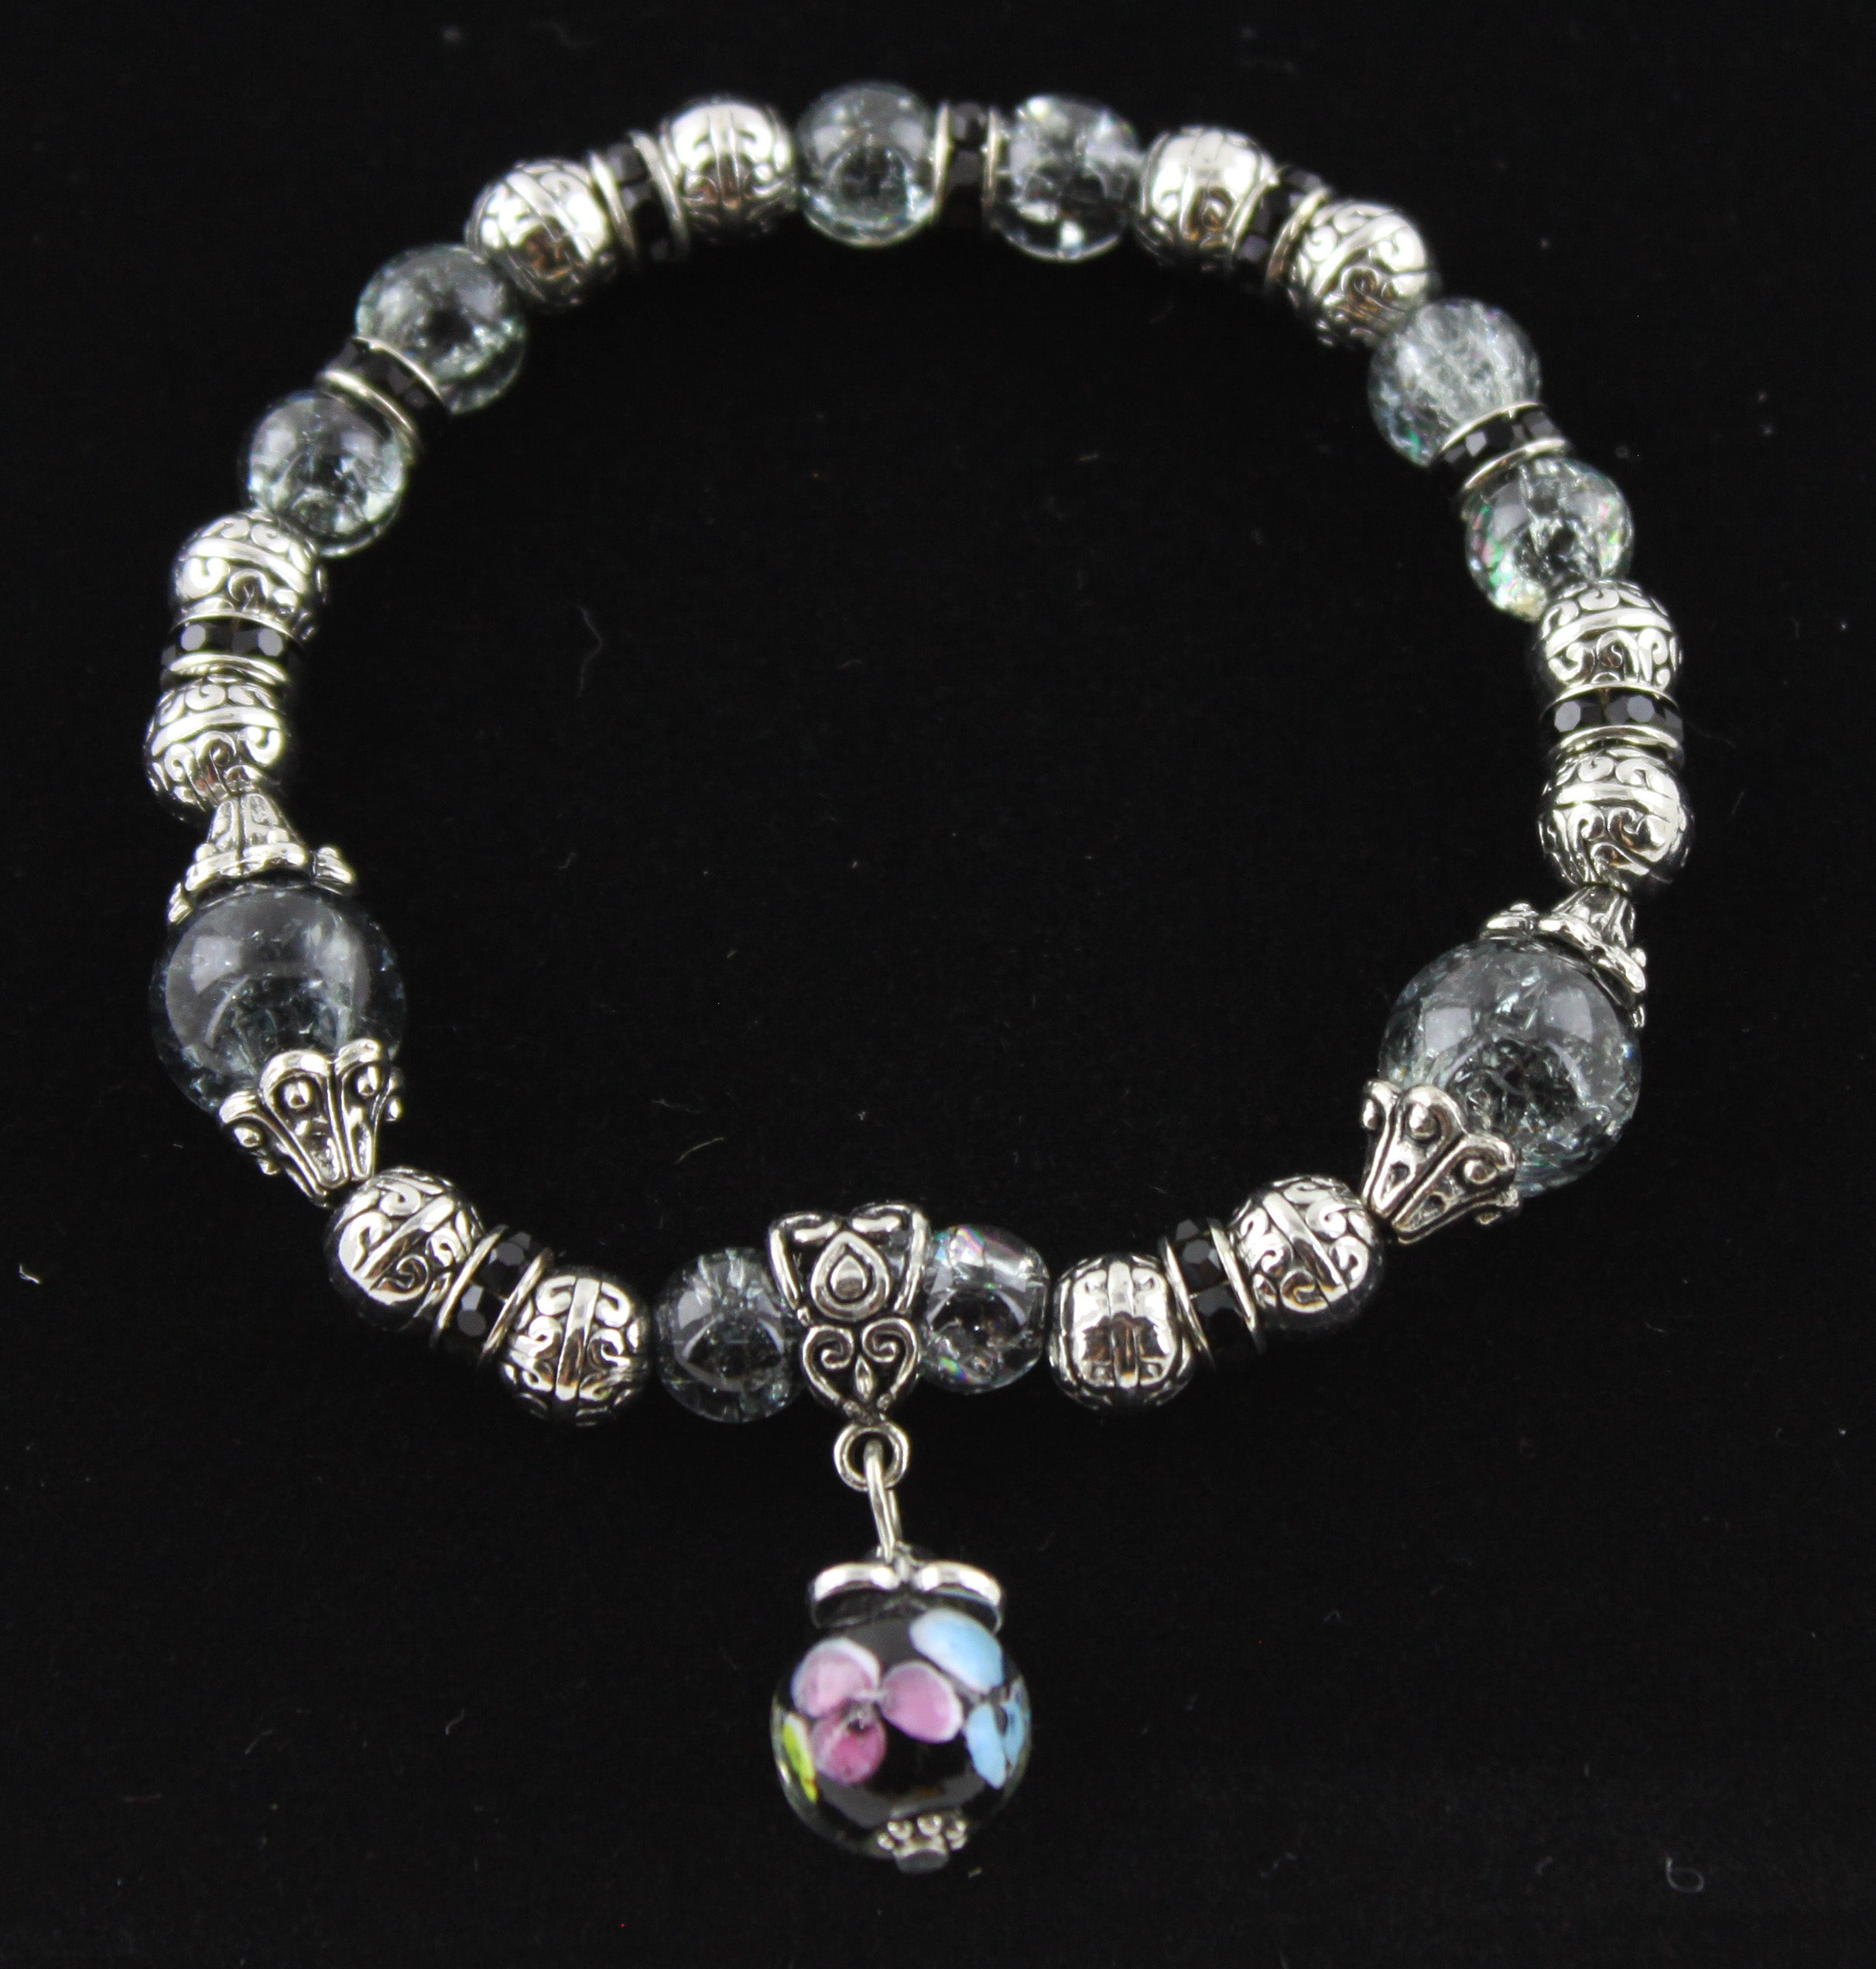 Shades of Grey with a Hint of Colour Pendant Bracelet